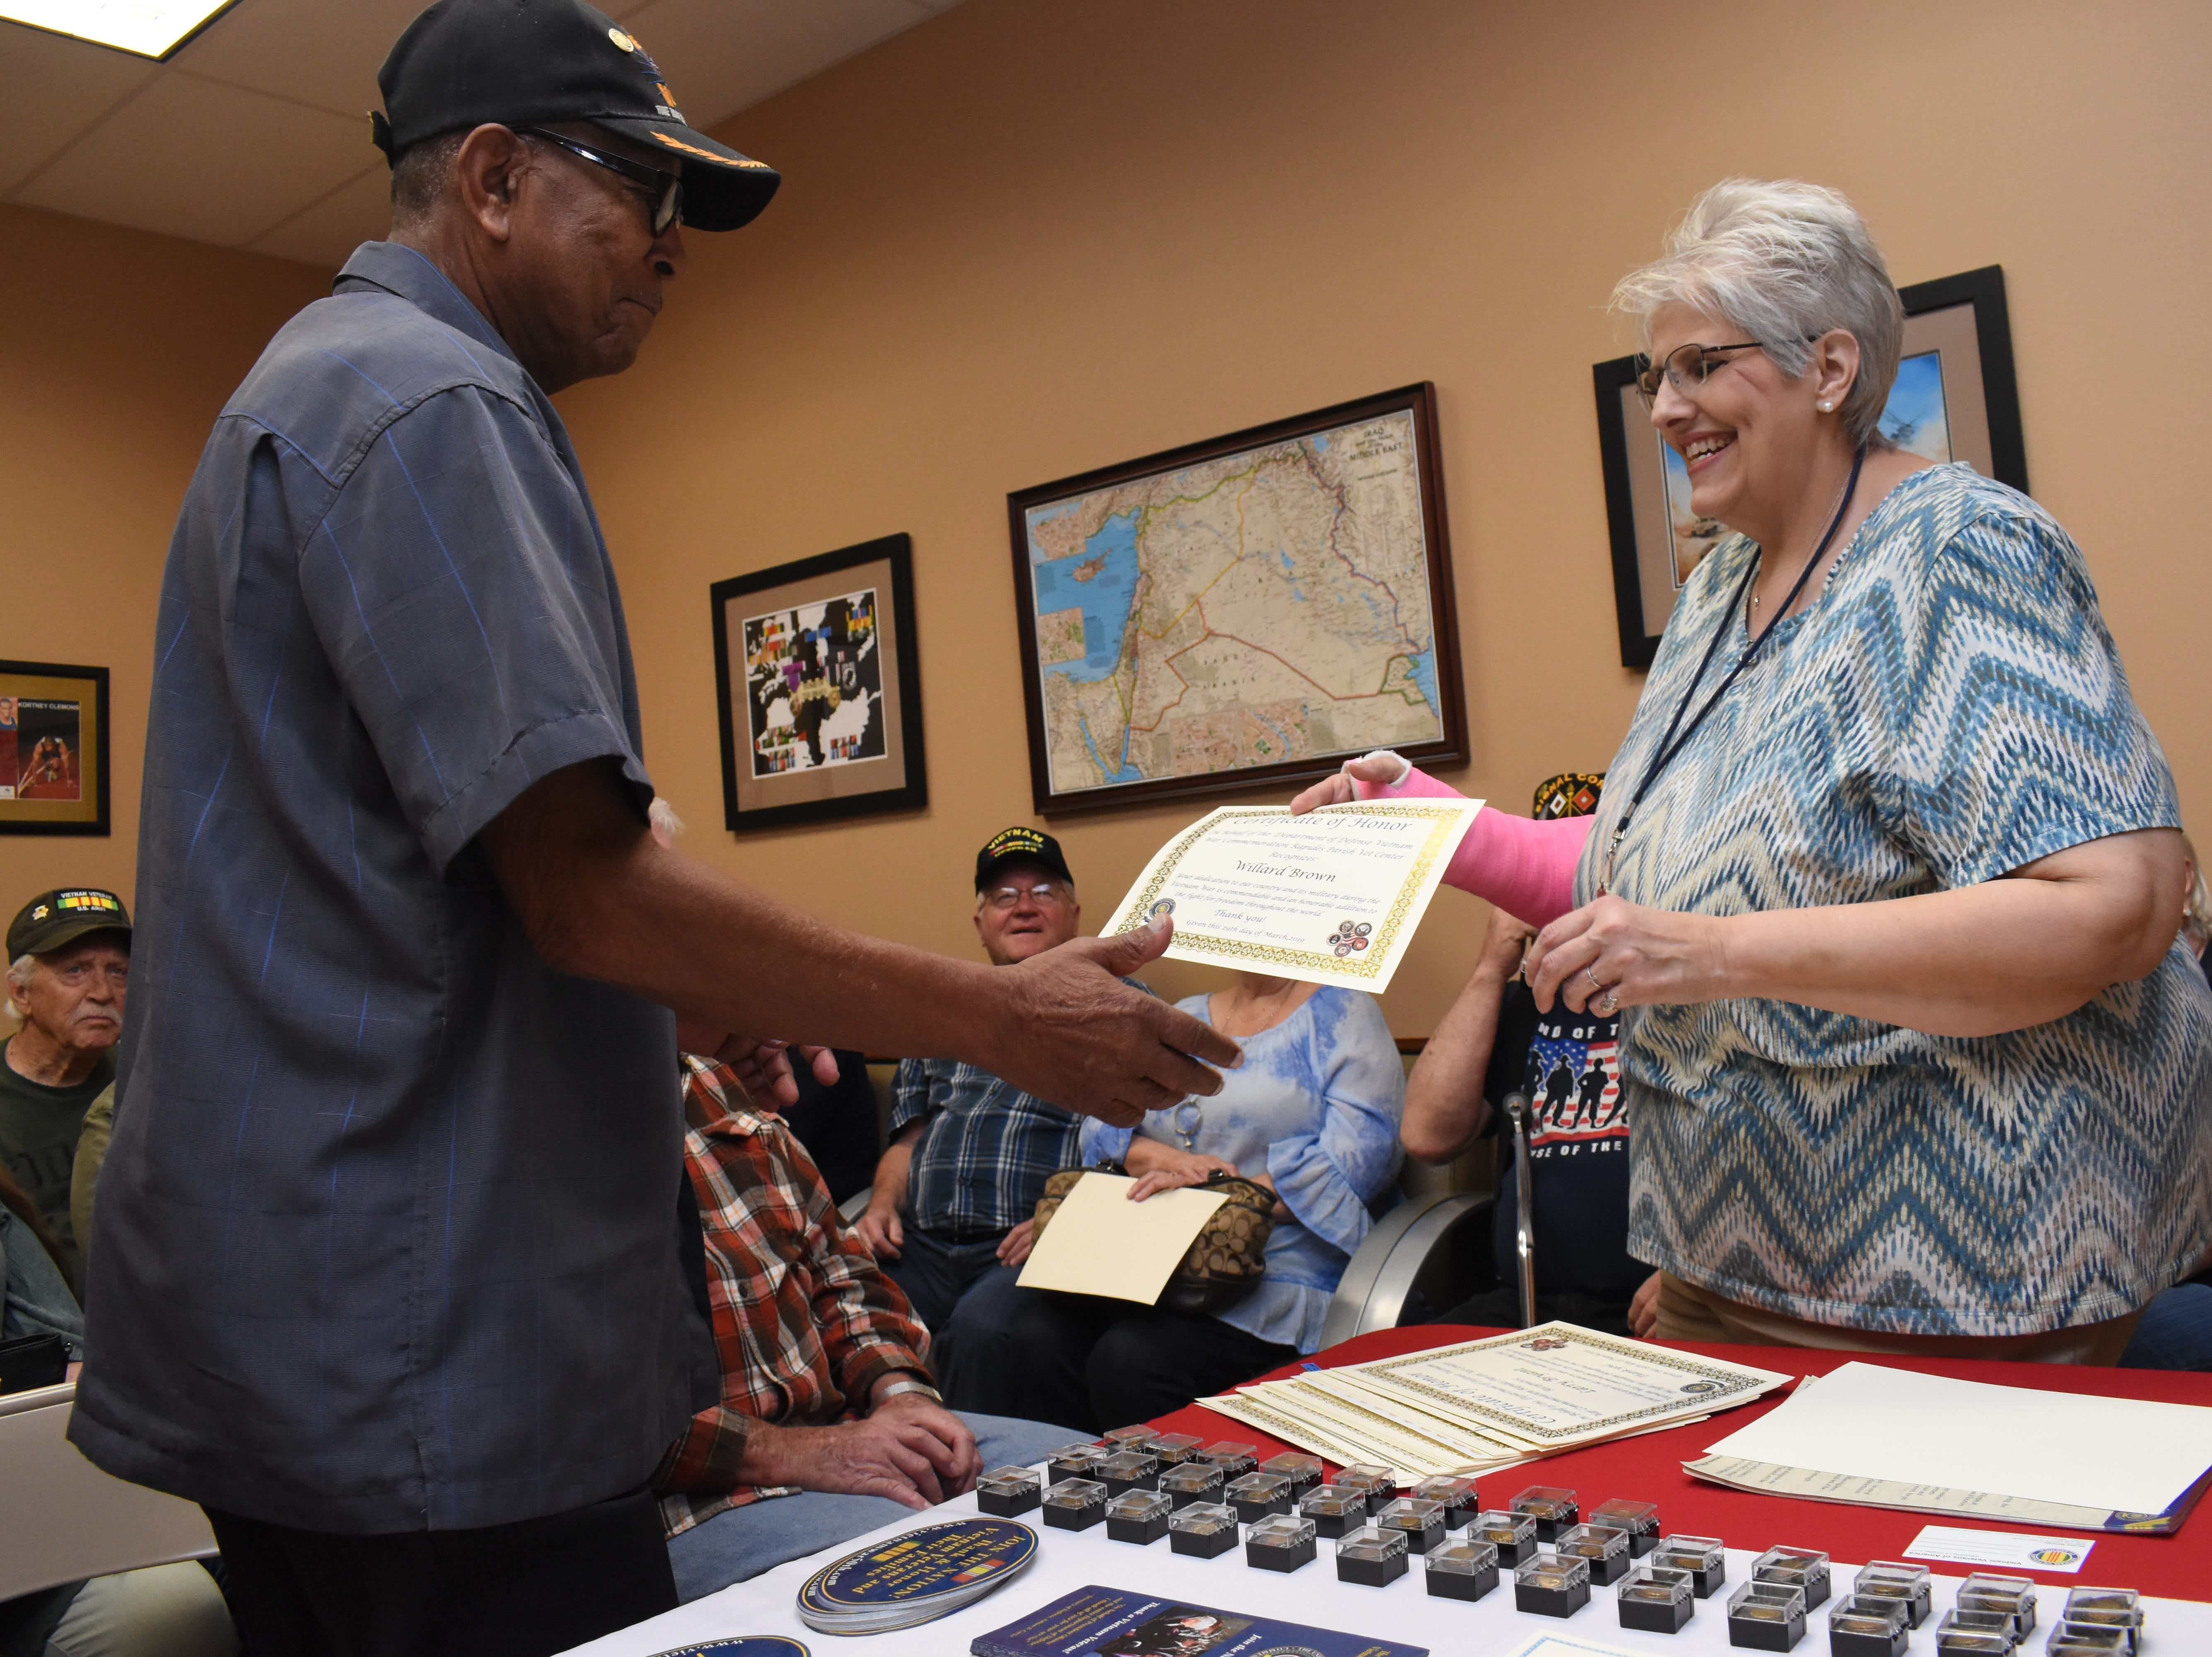 """Elizabeth Cheryl Nolen (right) executive director of the Rapides Parish Vet Center, hands Willard Brown, a Vietnam War veteran, a certificate and pin in honor of his service during the Vietnam War. The Rapides Parish Vet Center, located at 5803 Coliseum Blvd., which serves combat-era military veterans, held a pin ceremony Friday, March 29, 2019 for Vietnam War veterans in recognition of Vietnam Veterans Day. Over the course of the day over 50 pins and certificates were handed out. Vietnam Veterans Day honors those who served and their families. The Vietnam War Veterans Recognition Act  was signed into law in 2017. """"Welcome Home Vietnam Veterans Day"""" is celebrated in most states on March 29 or March 30. On March 29, 1973 the last troops withdrew from Vietnam and American prisoners of war were returned. This is also the date President Richard Nixon designated for the first Vietnam Veterans Day in 1974. For more information about the Rapides Parish Vet Center and their services, call (318) 466-4327."""